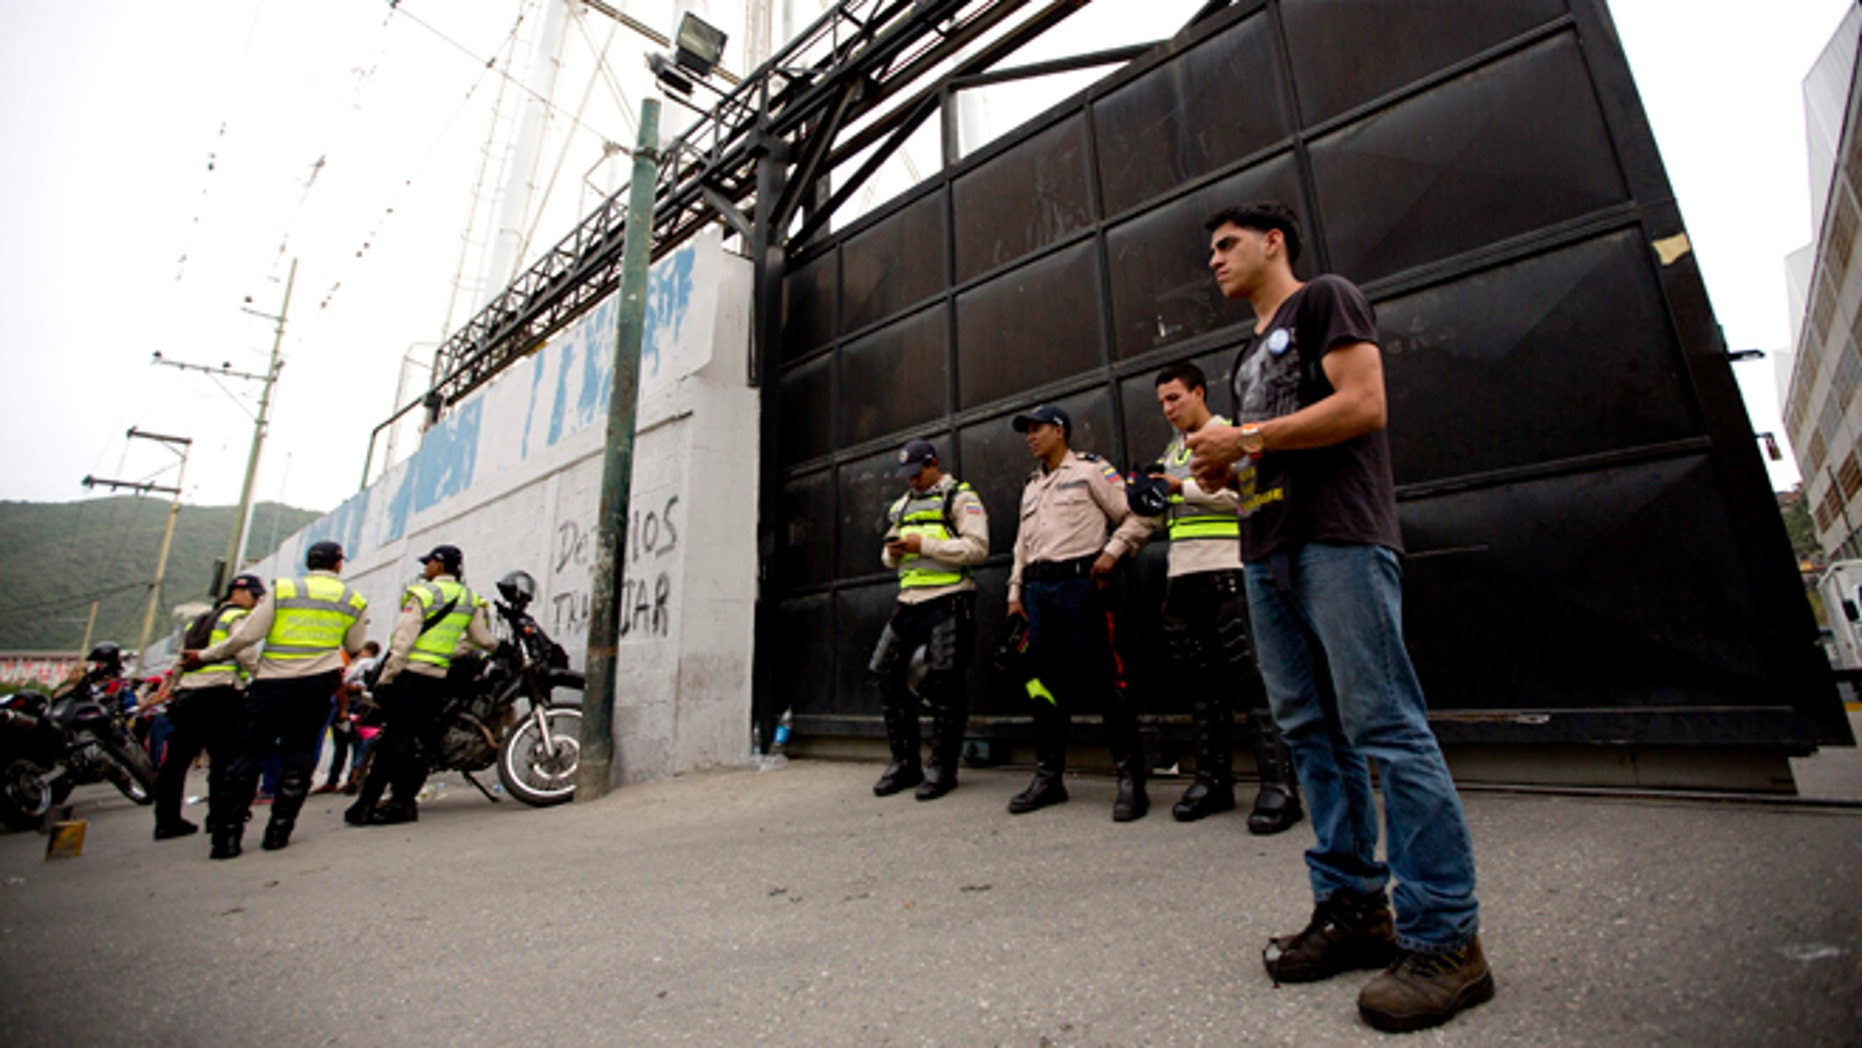 A group of Bolivarian Police officers stand at the gate of distribution center belonging to Venezuelas largest food company, Empresas Polar, in La Yaguara in Caracas, Venezuela, Thursday, July 30, 2015. According to Empresas Polar director Manuel Felipe Larrazabal the government occupied of one of its Caracas food distribution centers. President Nicolas Maduro has accused Polar of sabotaging the economy by hoarding goods and intentionally creating shortages, a charge the company has denied. (AP Photo/Ariana Cubillos)